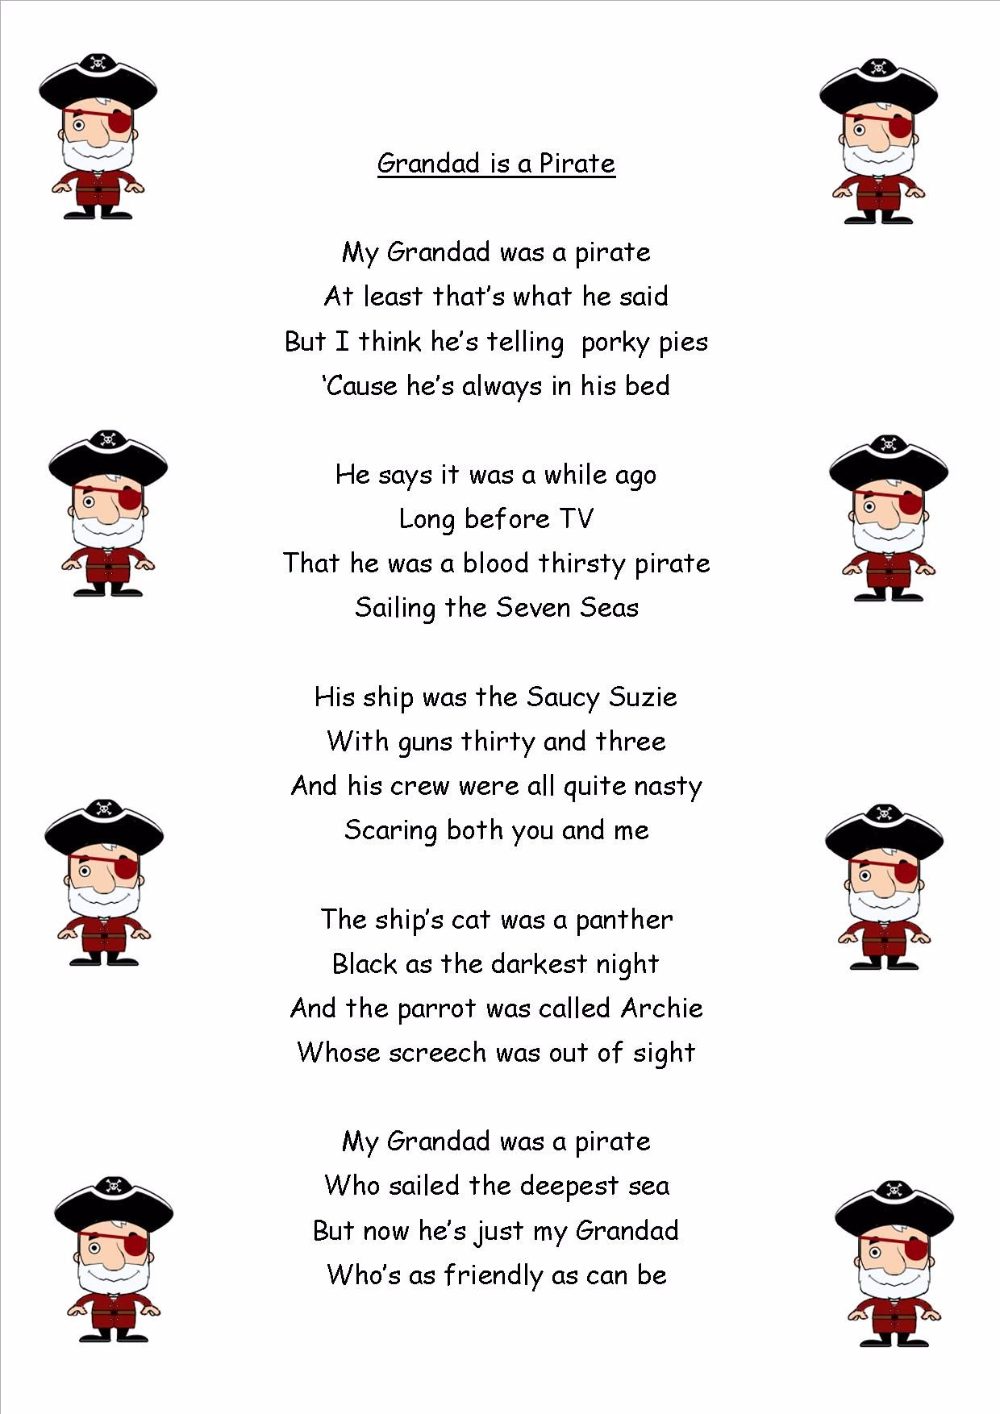 Ks1 Sats Practice Reading Comrehension Inference And Deduction Questions Pirates Theme Comprehension Booklet Reading Comrehension Reading Comprehension [ 1414 x 1000 Pixel ]